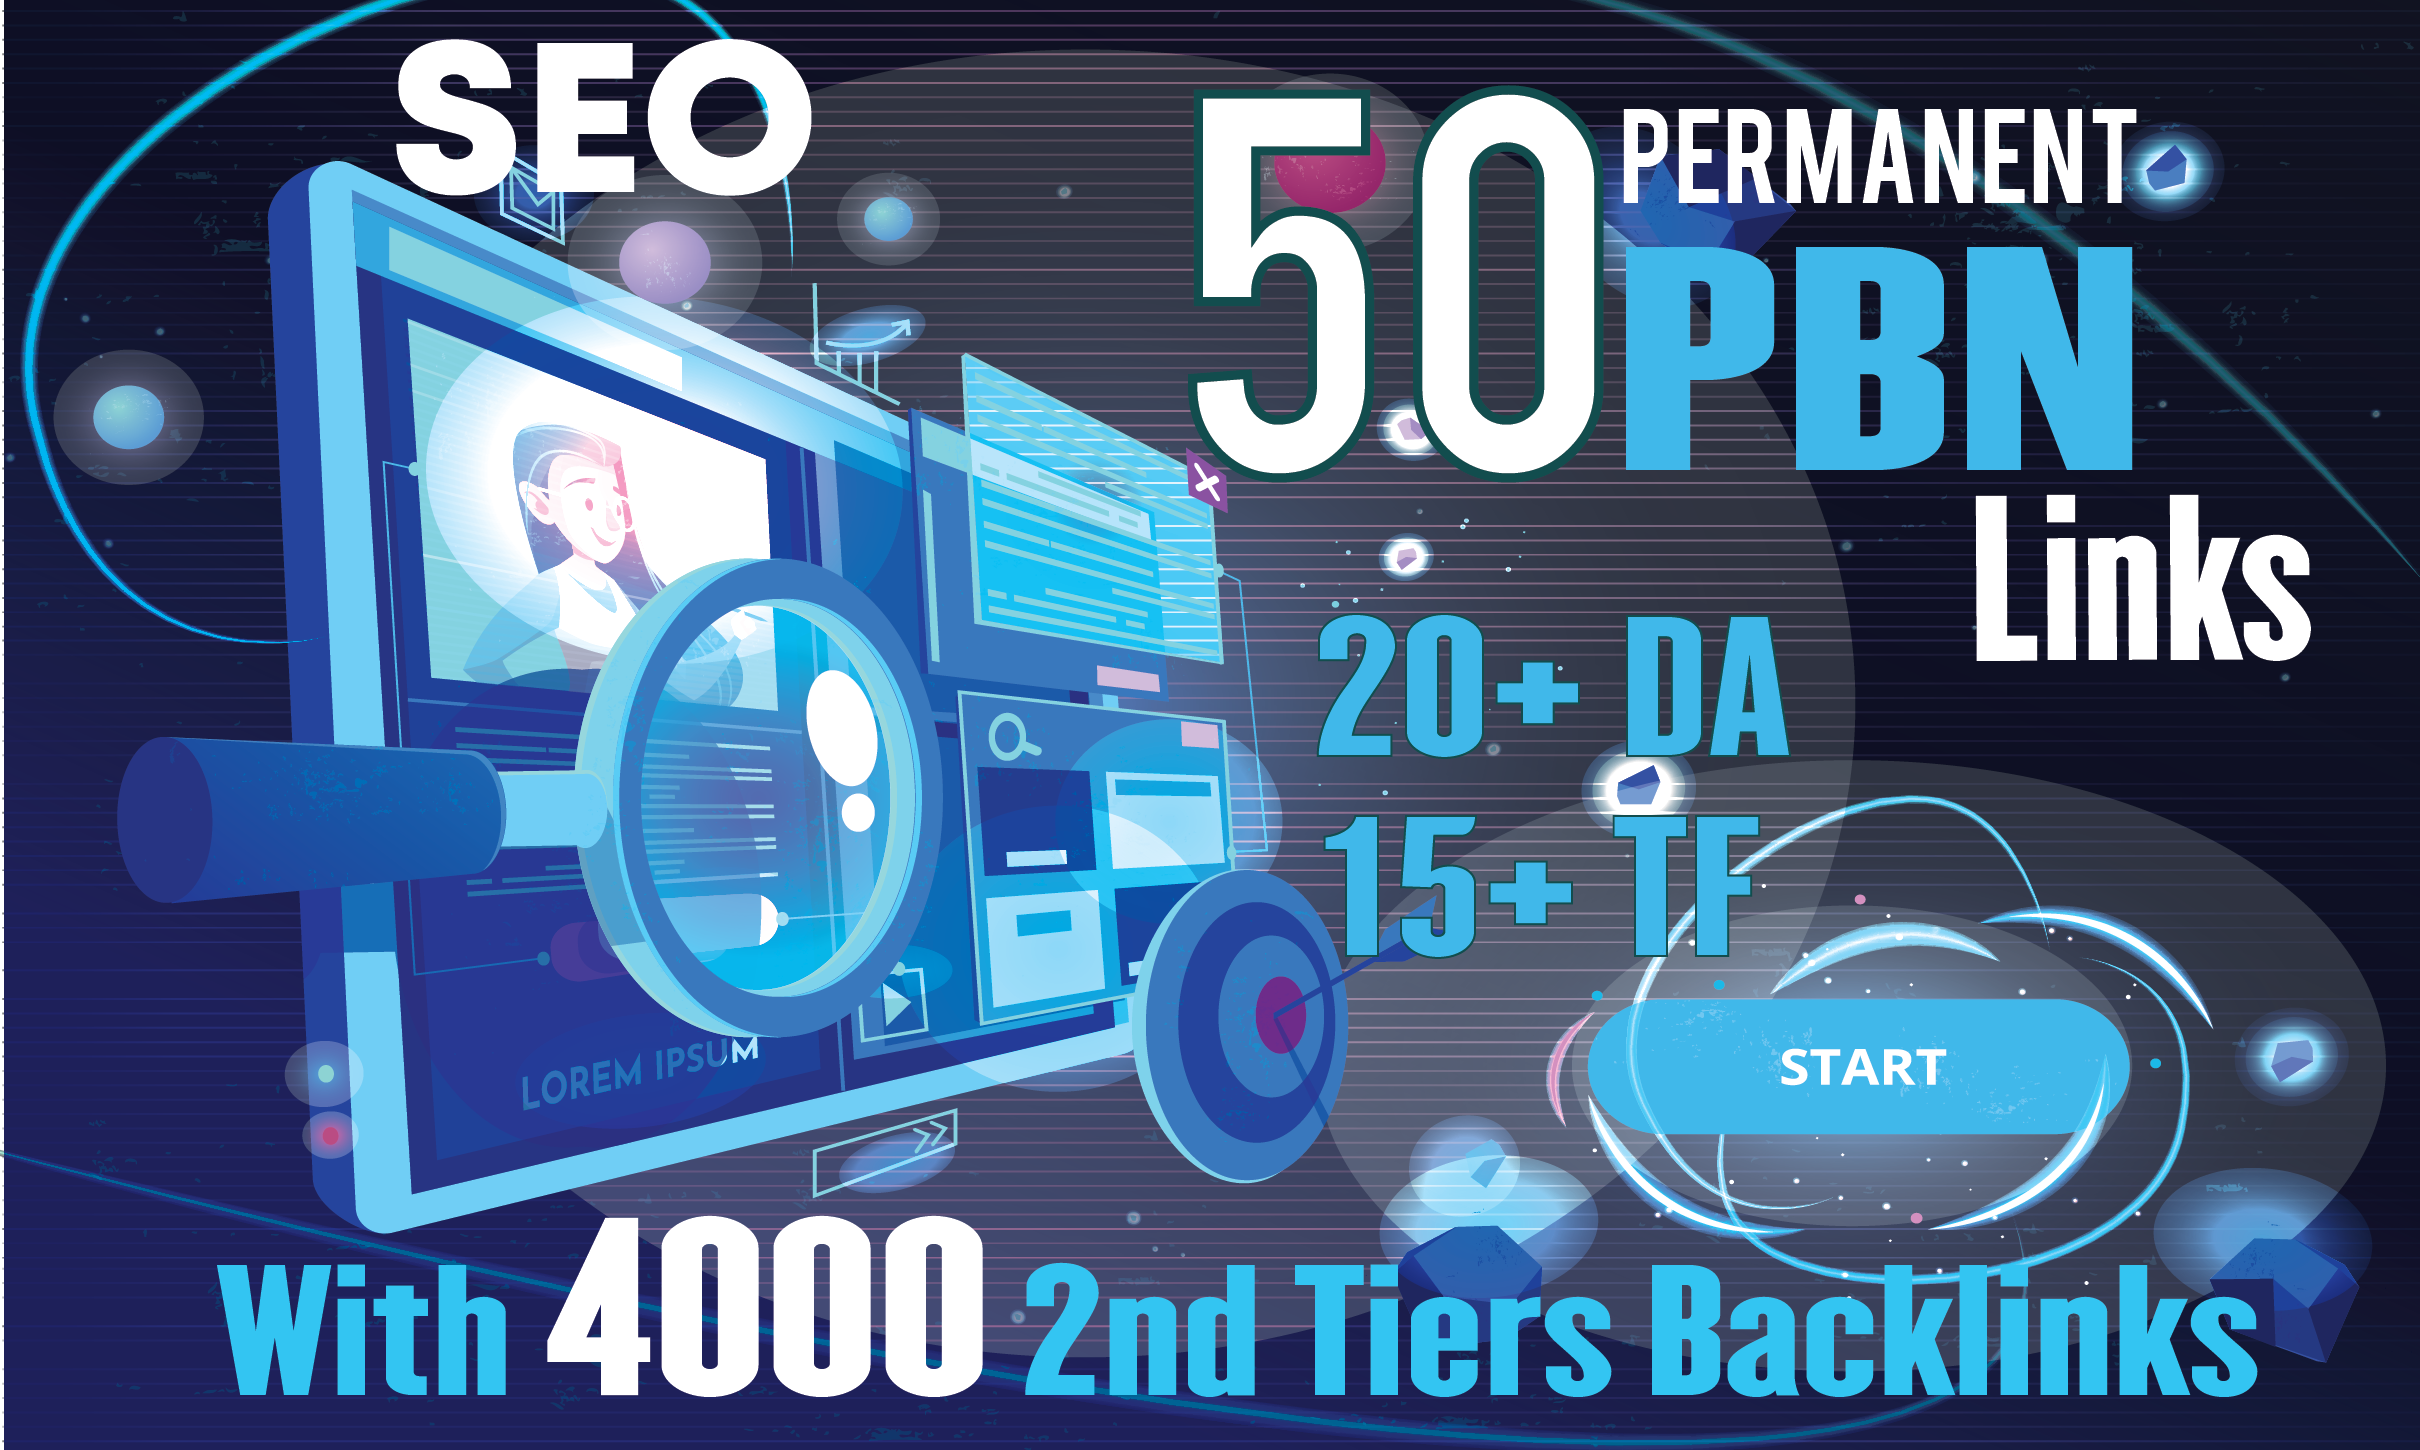 Build 50 Homepage Permanent PBN With 4000 2nd Tiers Backlinks